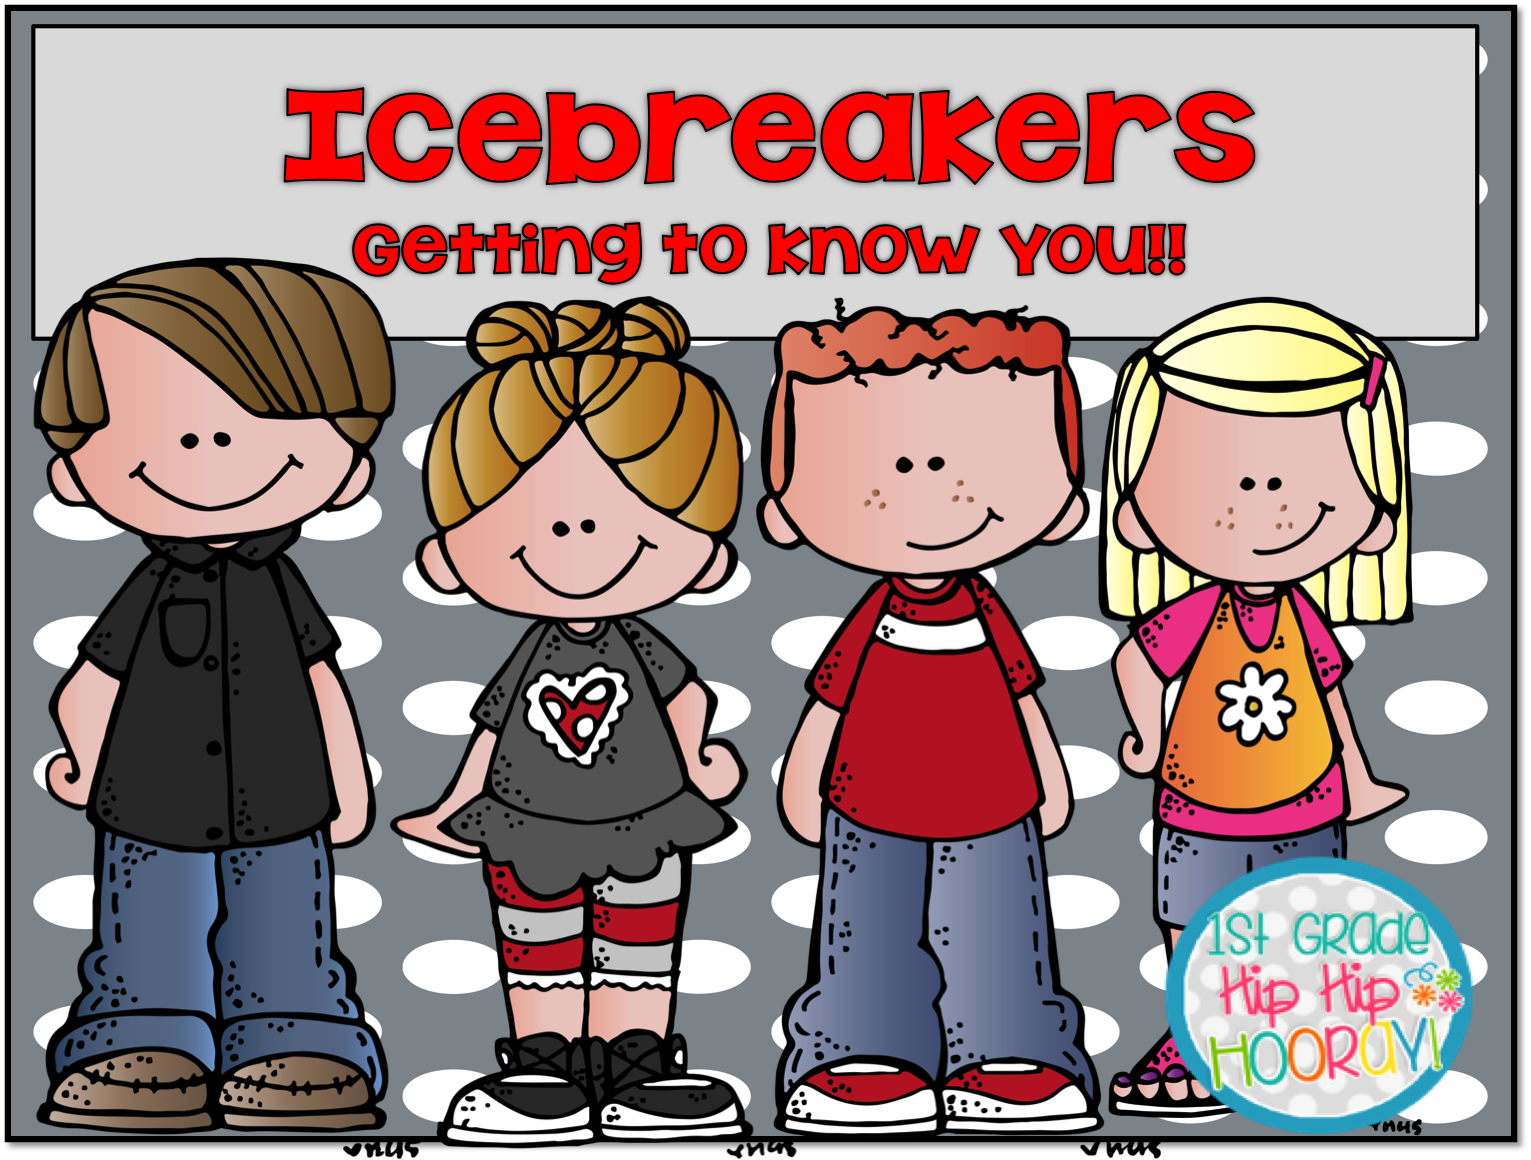 1st Grade Hip Hip Hooray Icebreakers For Back To School